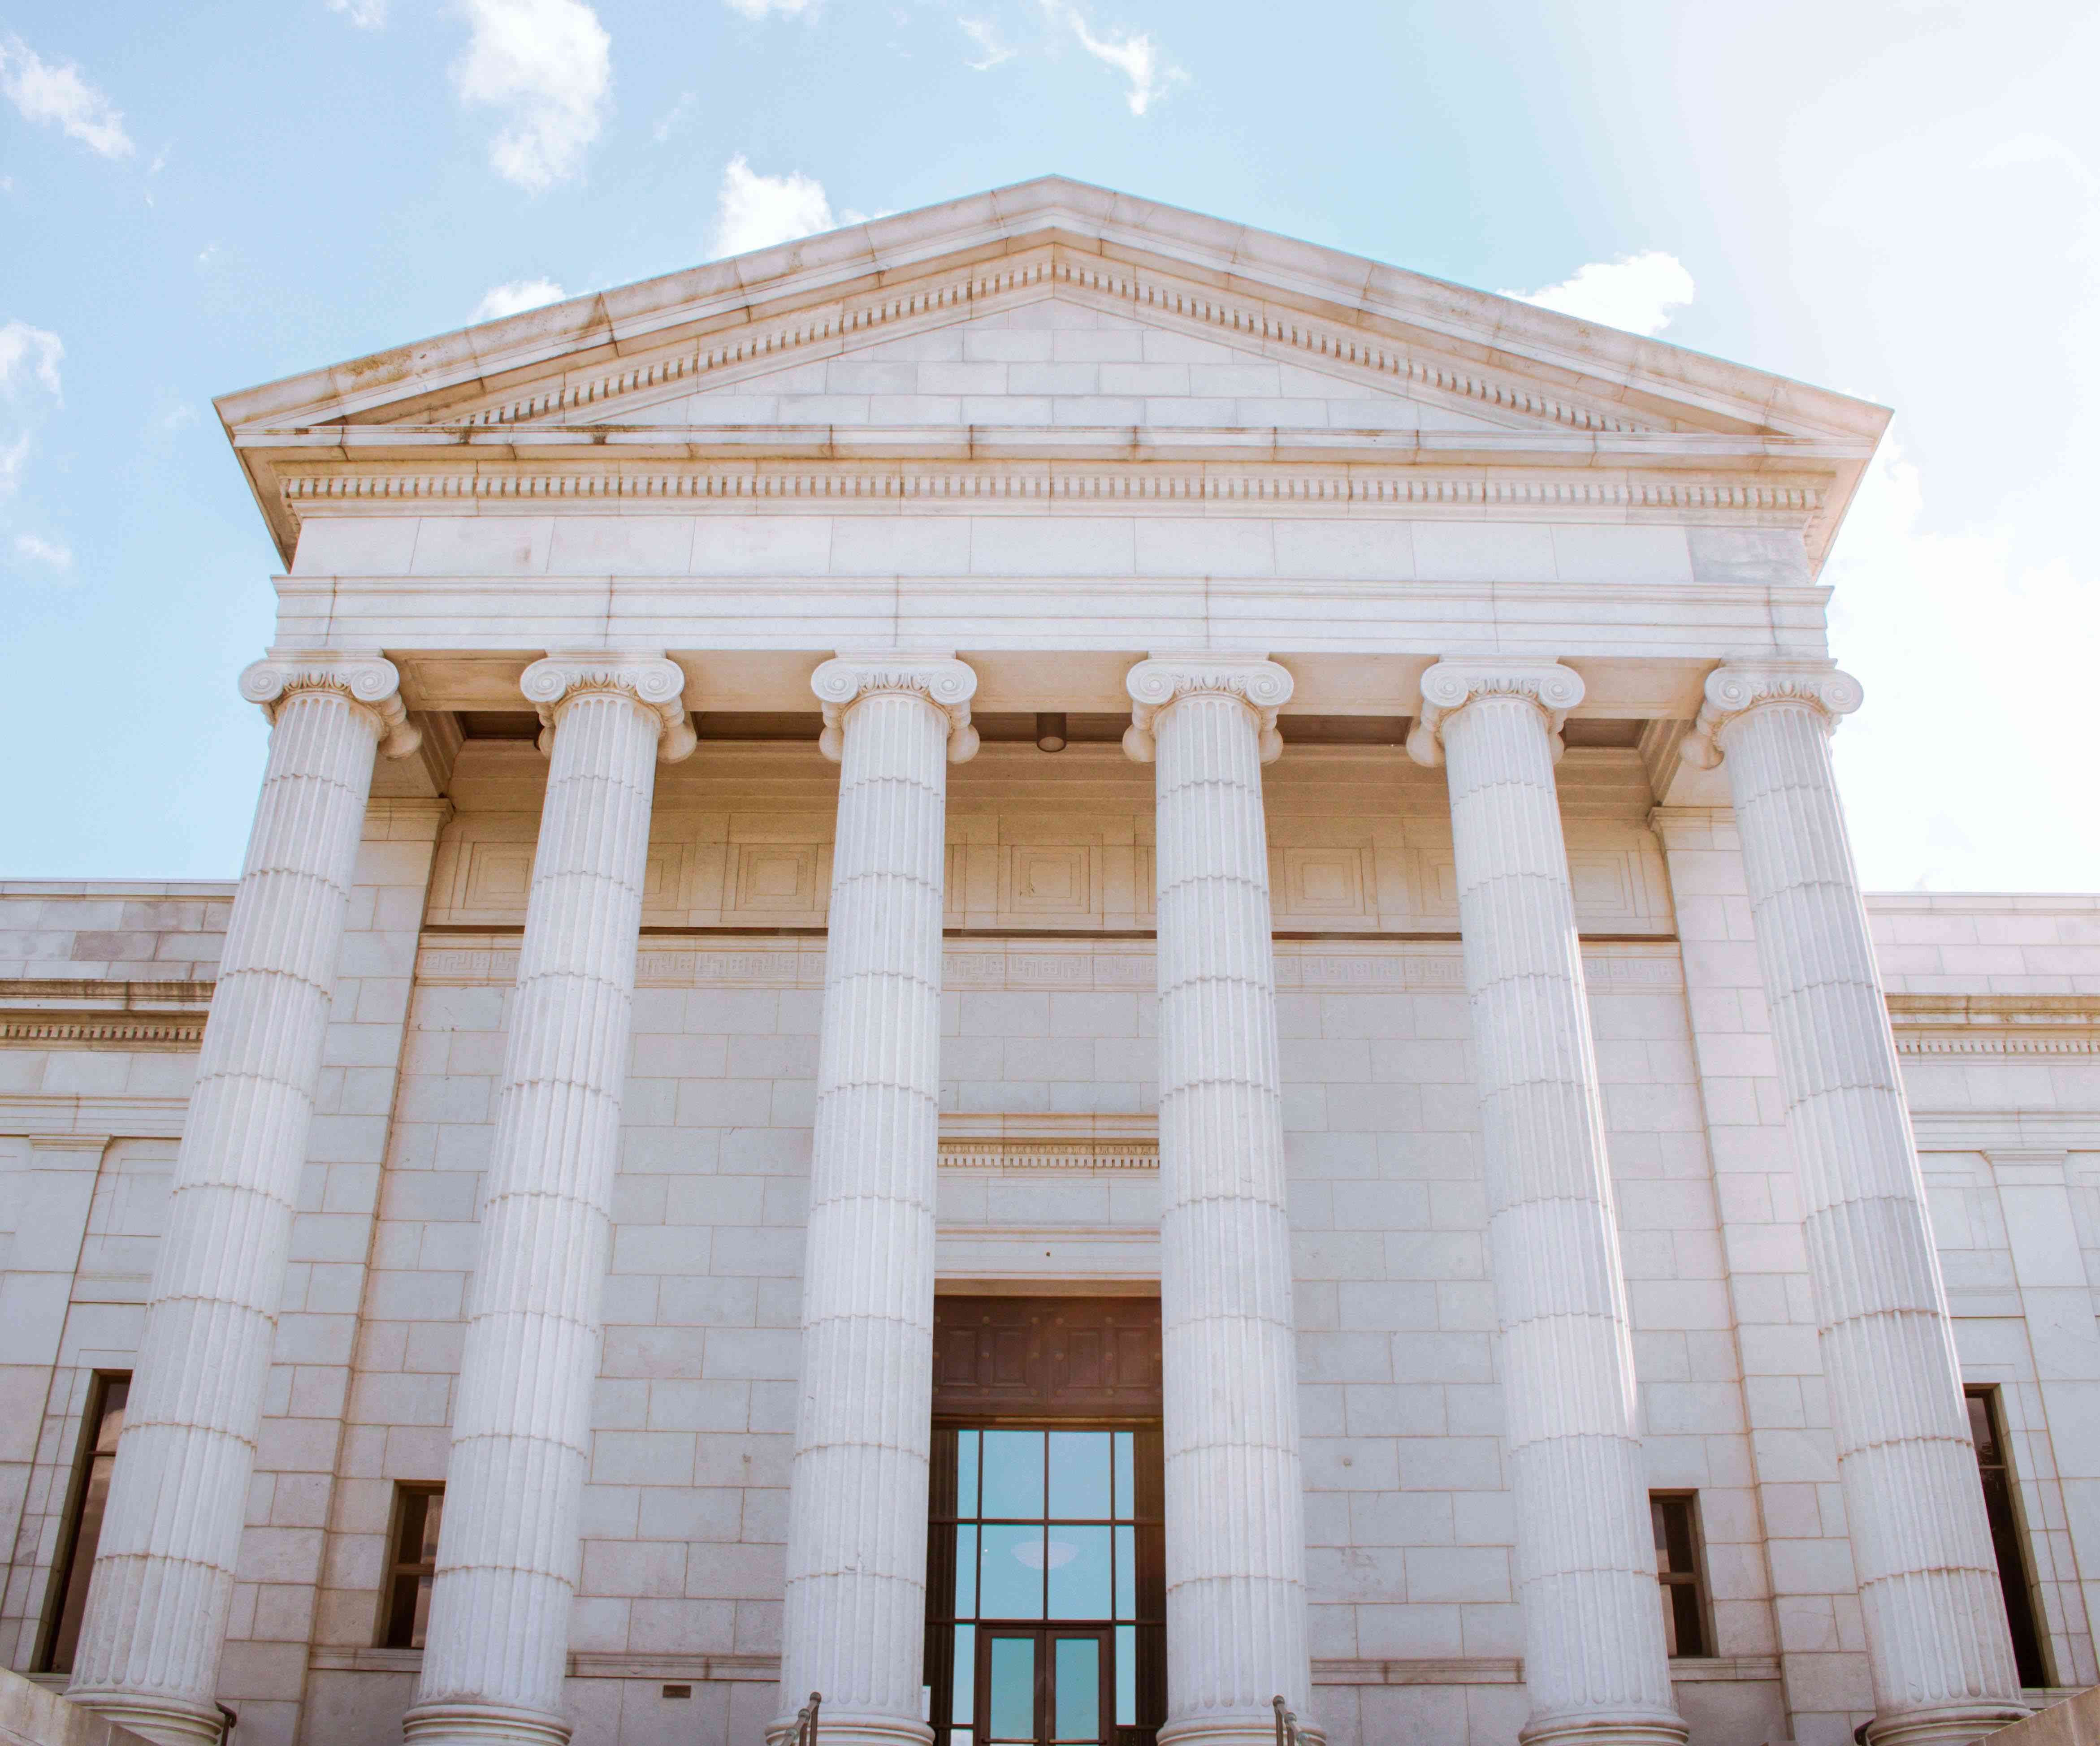 The entrance to the Minneapolis Institute of Art